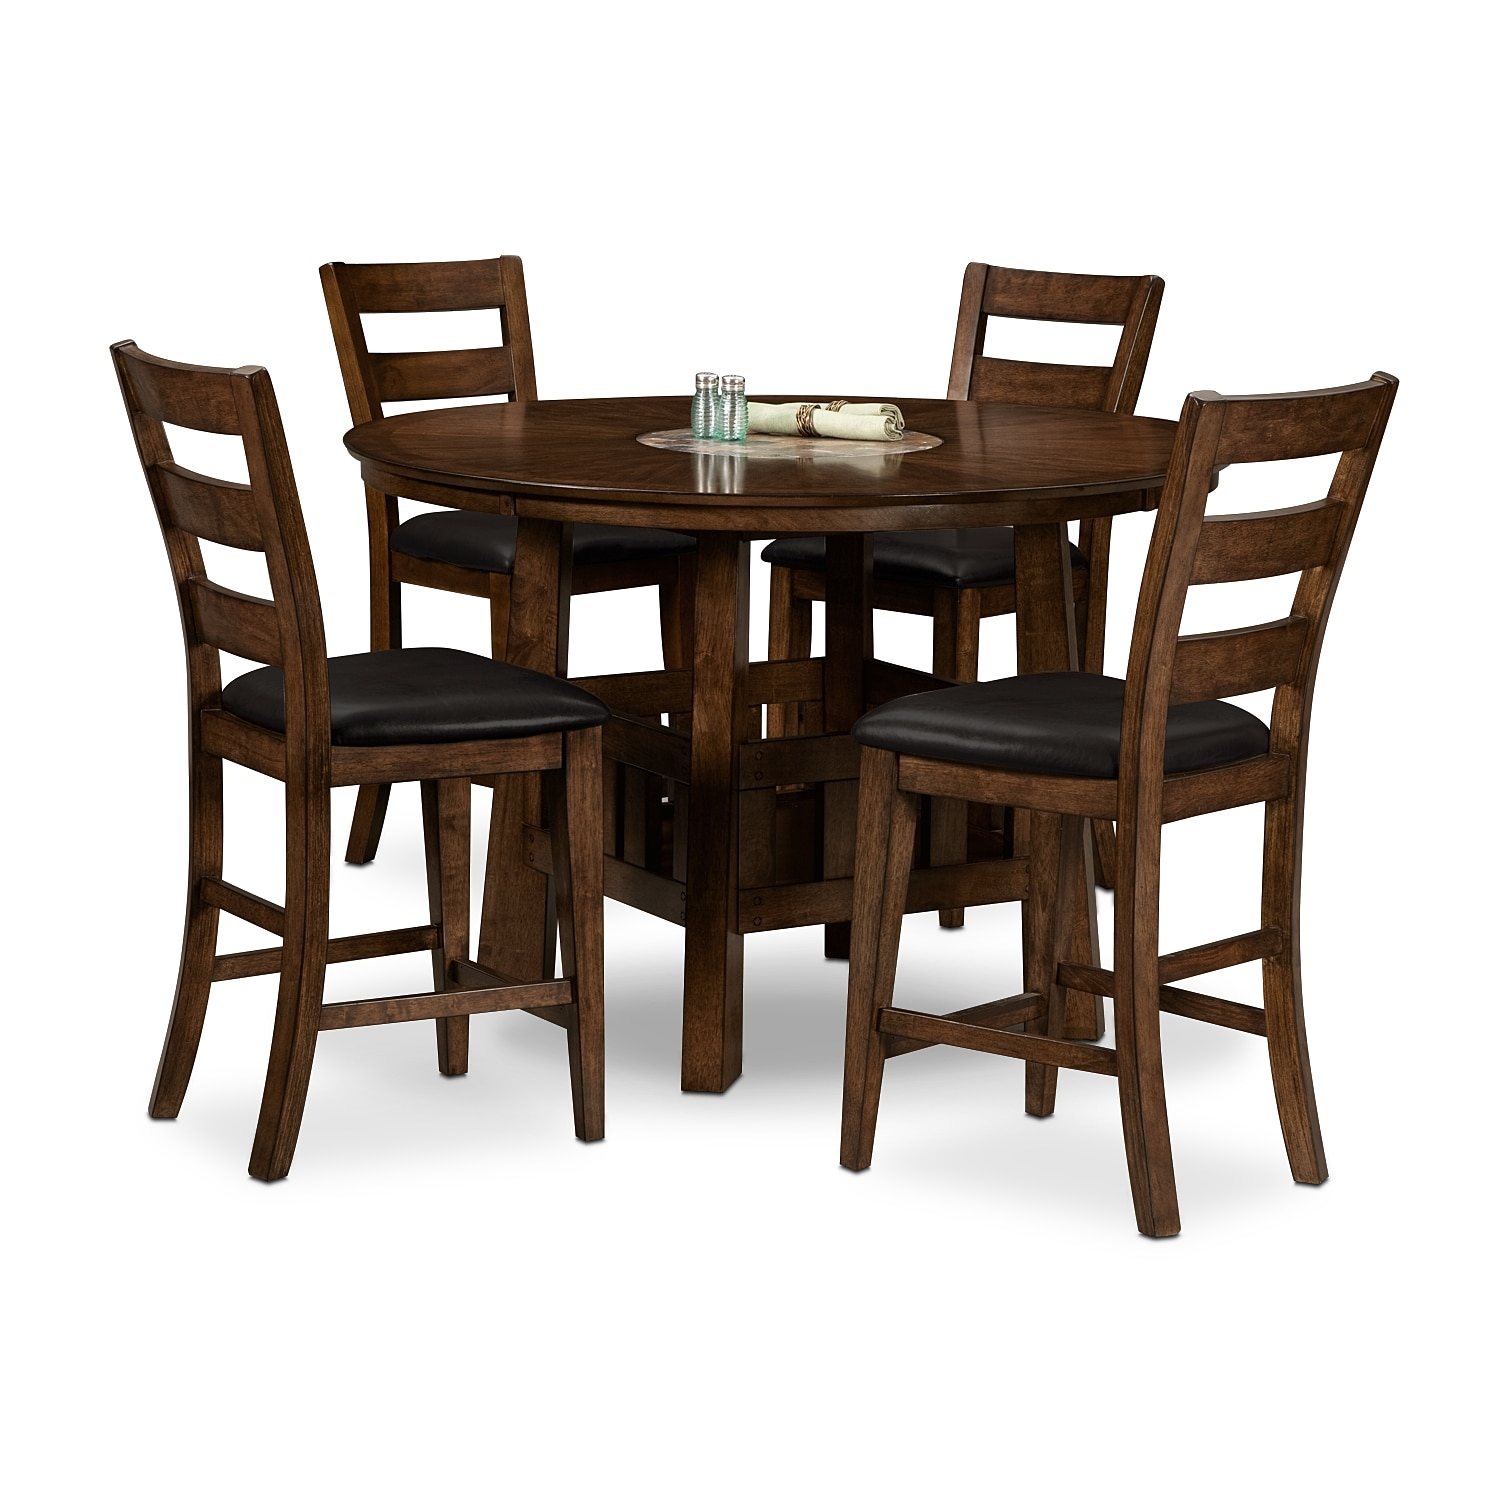 Furnishings for every room online and store furniture for Dining room furniture images